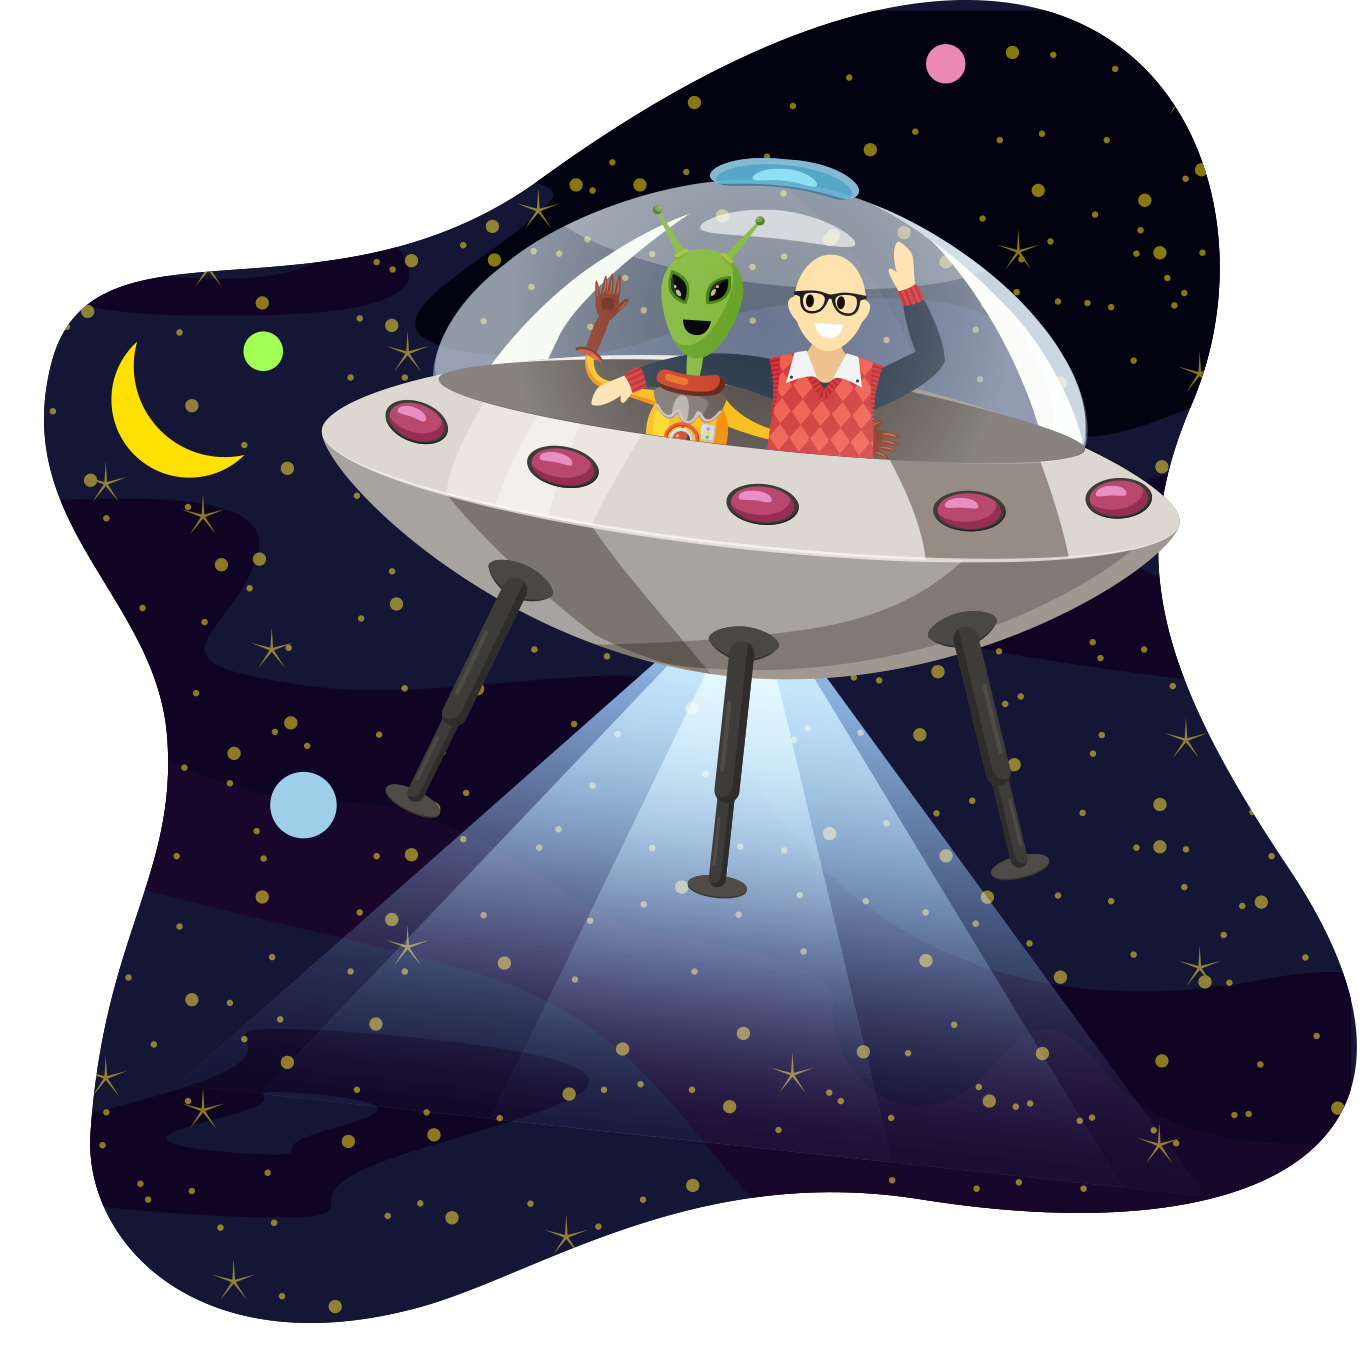 Gorav in a space ship with an alien; a close encounter, indeed!